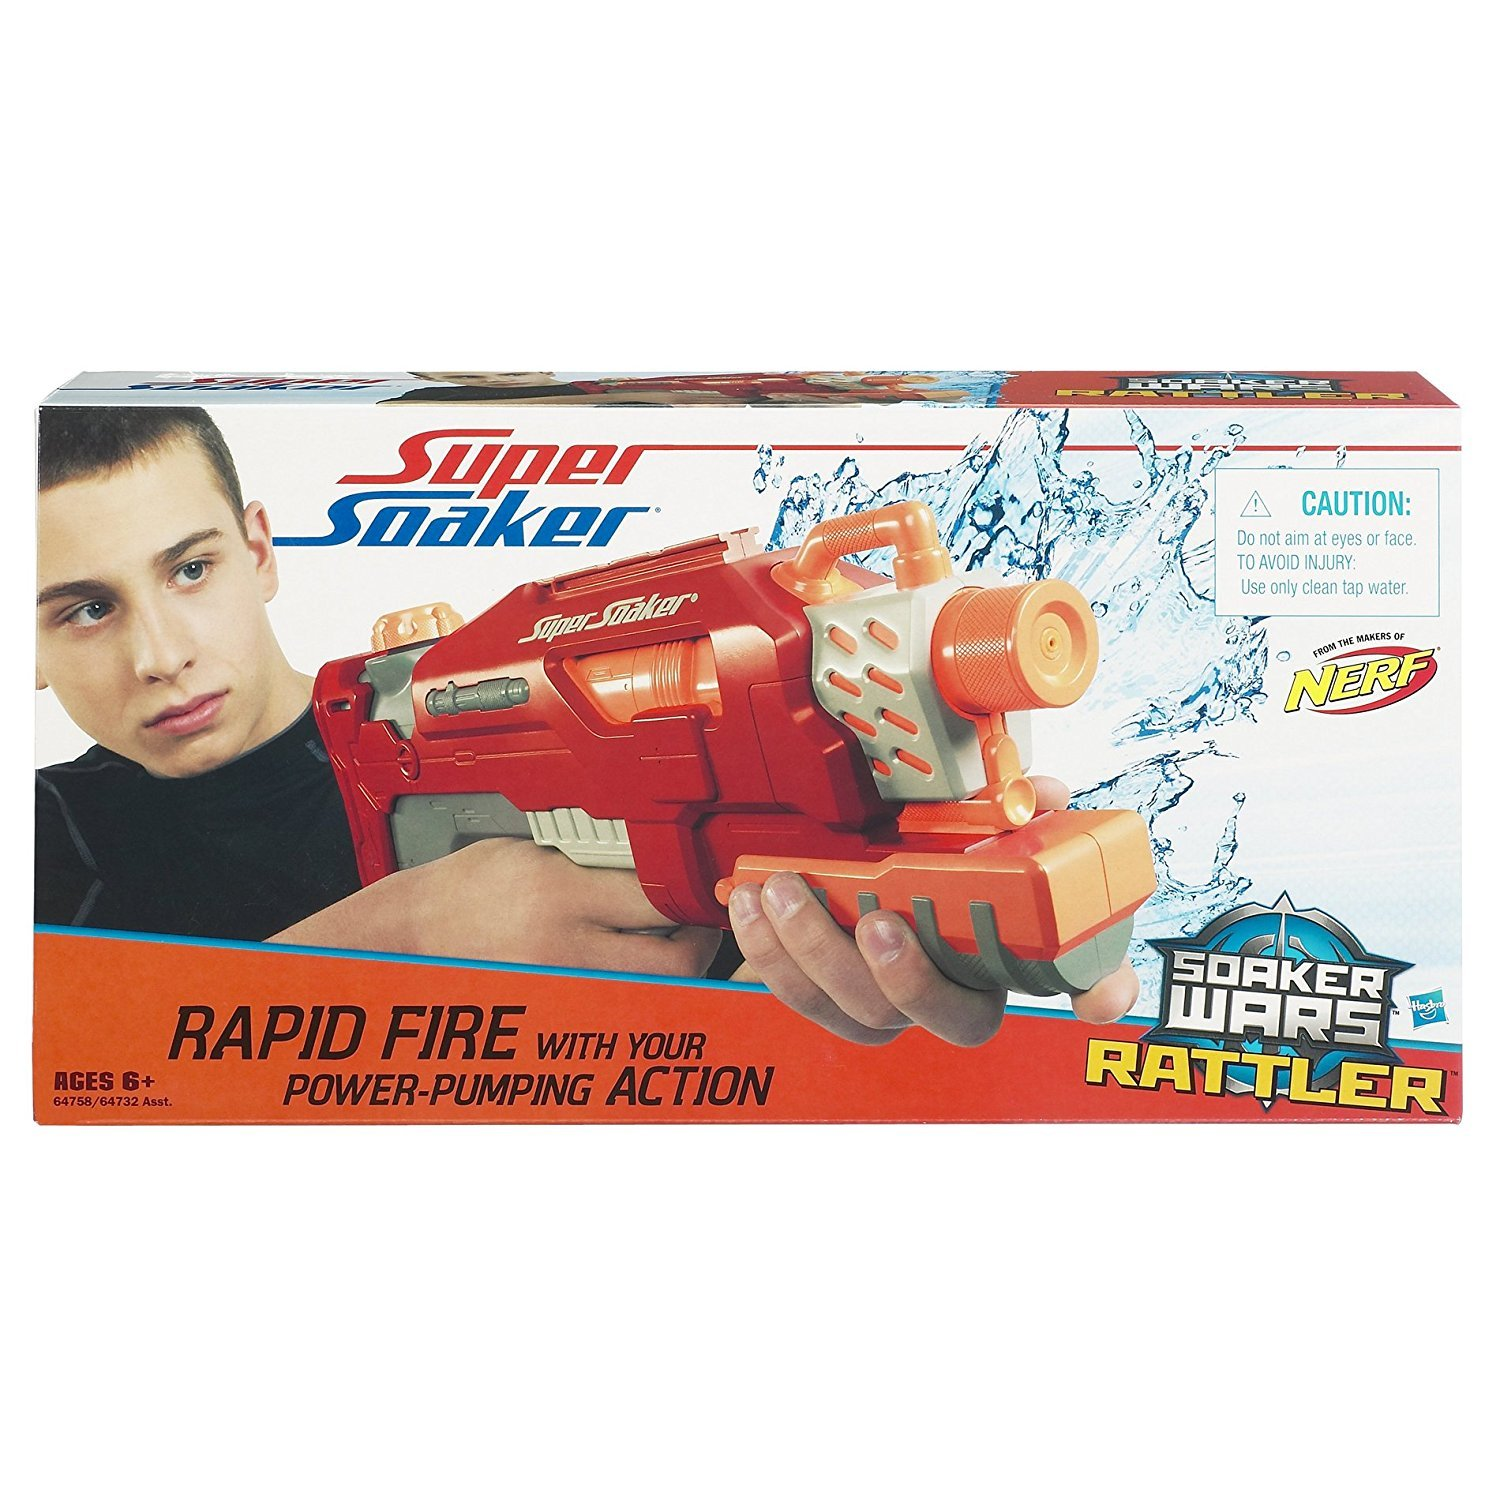 SUPERSOAKER Wars Rattler Water Blaster - Red by SUPERSOAKER